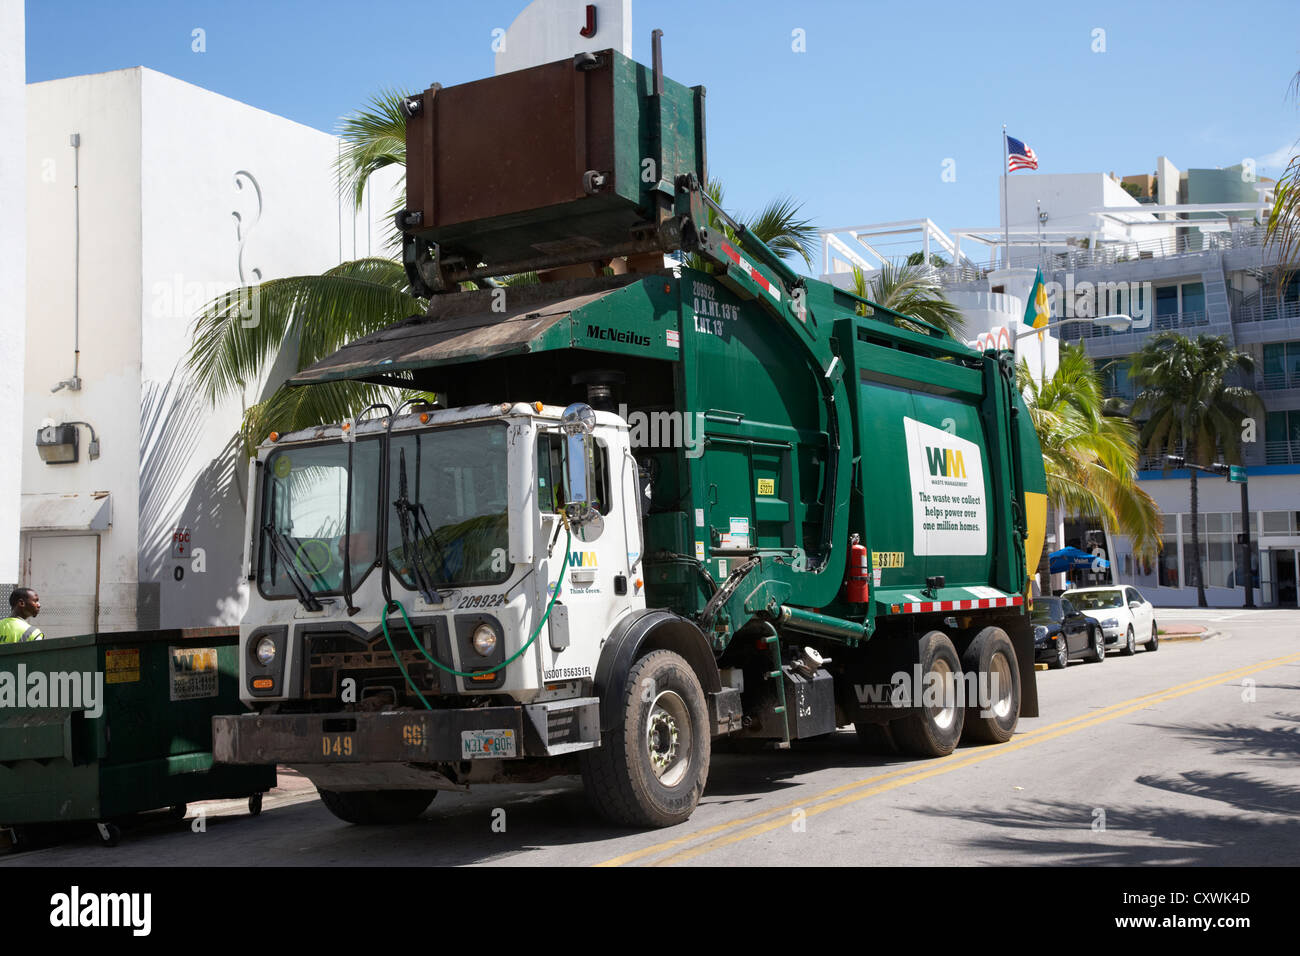 refuse truck collecting rubbish bins in miami south beach florida usa - Stock Image